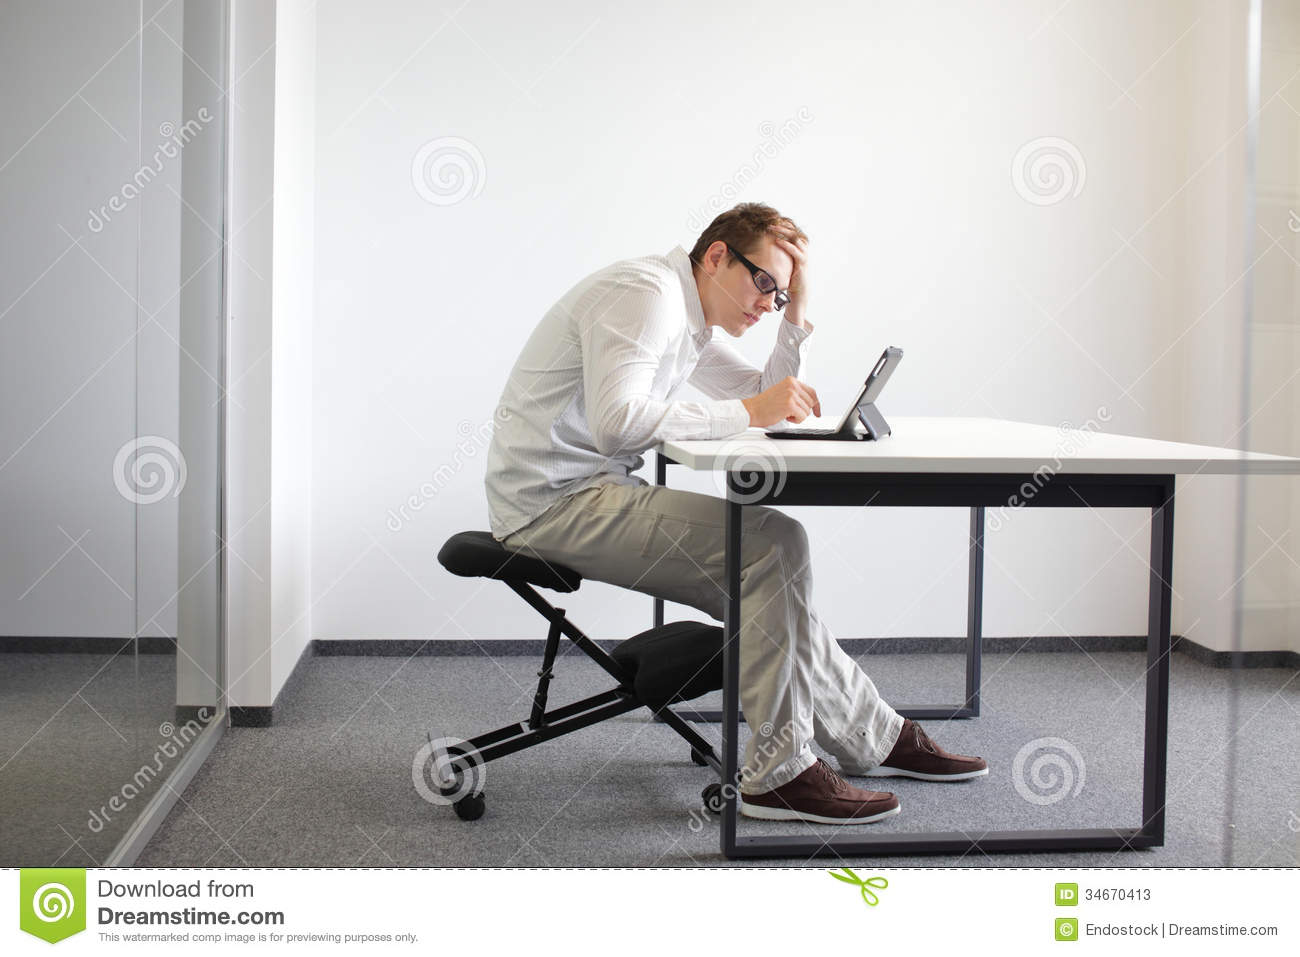 sitting posture on chair in office grey covers wedding young man is bent over his tablet bad at